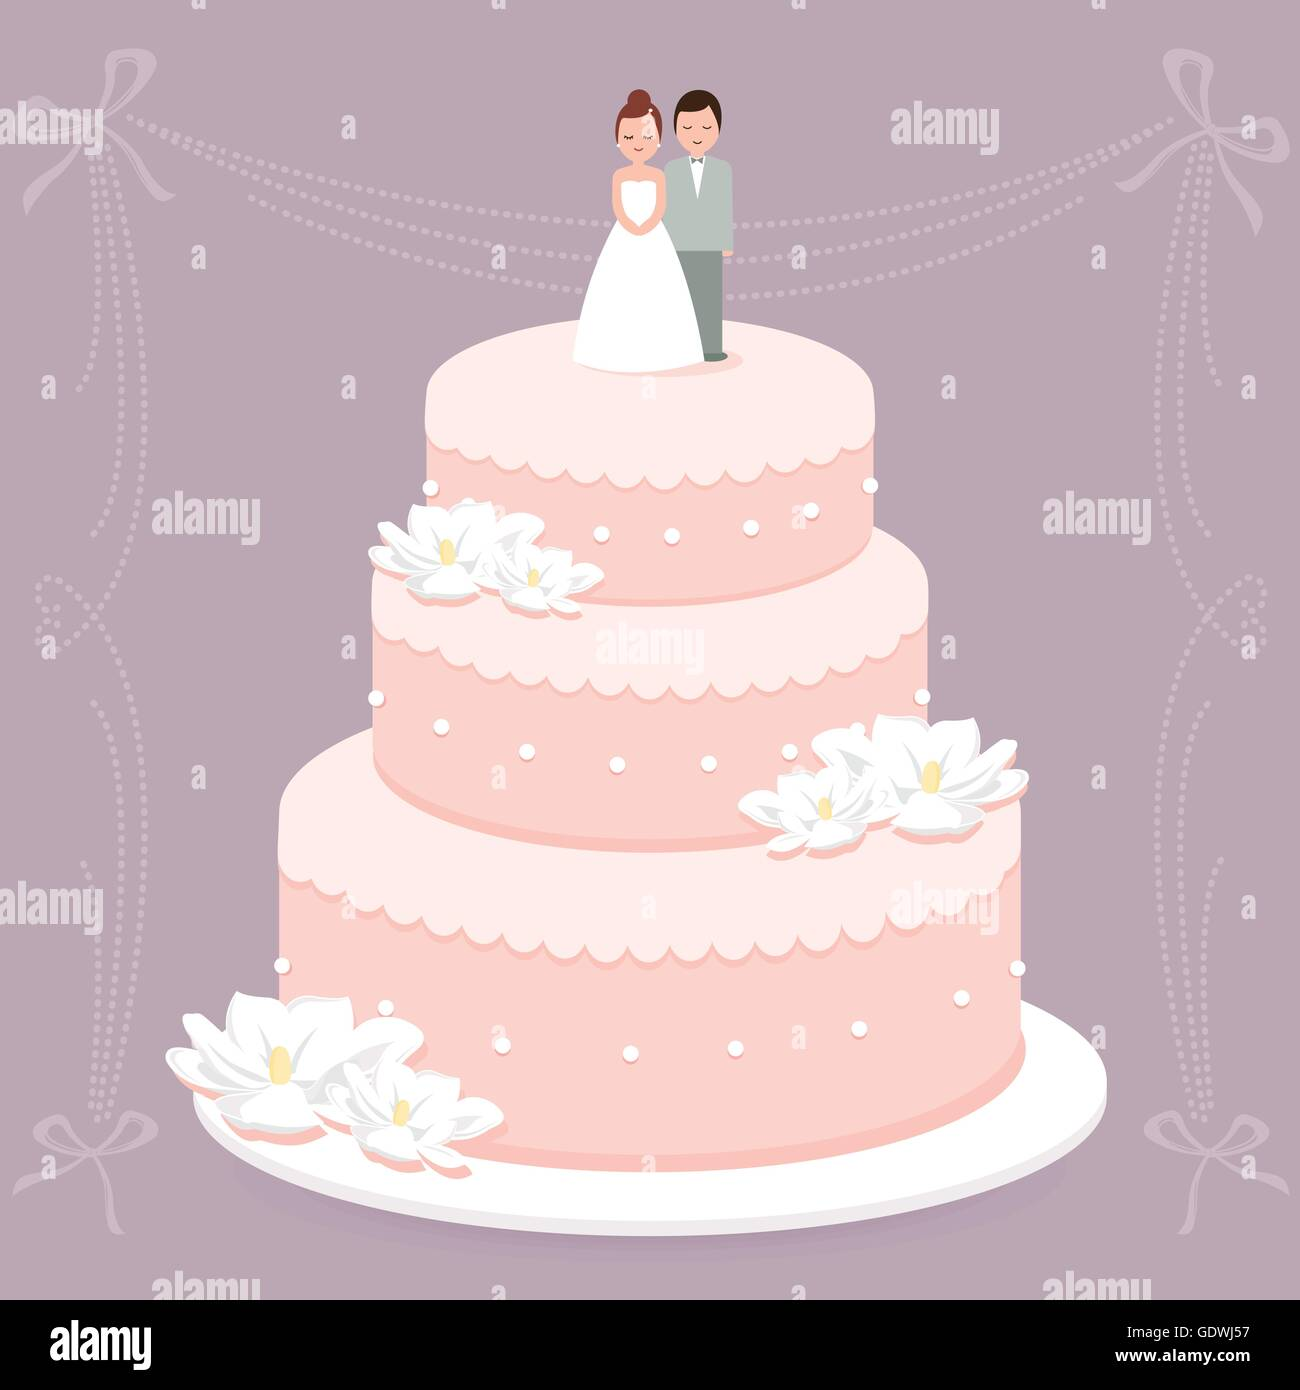 Bride And Groom Cake Topper Stock Vector Images - Alamy